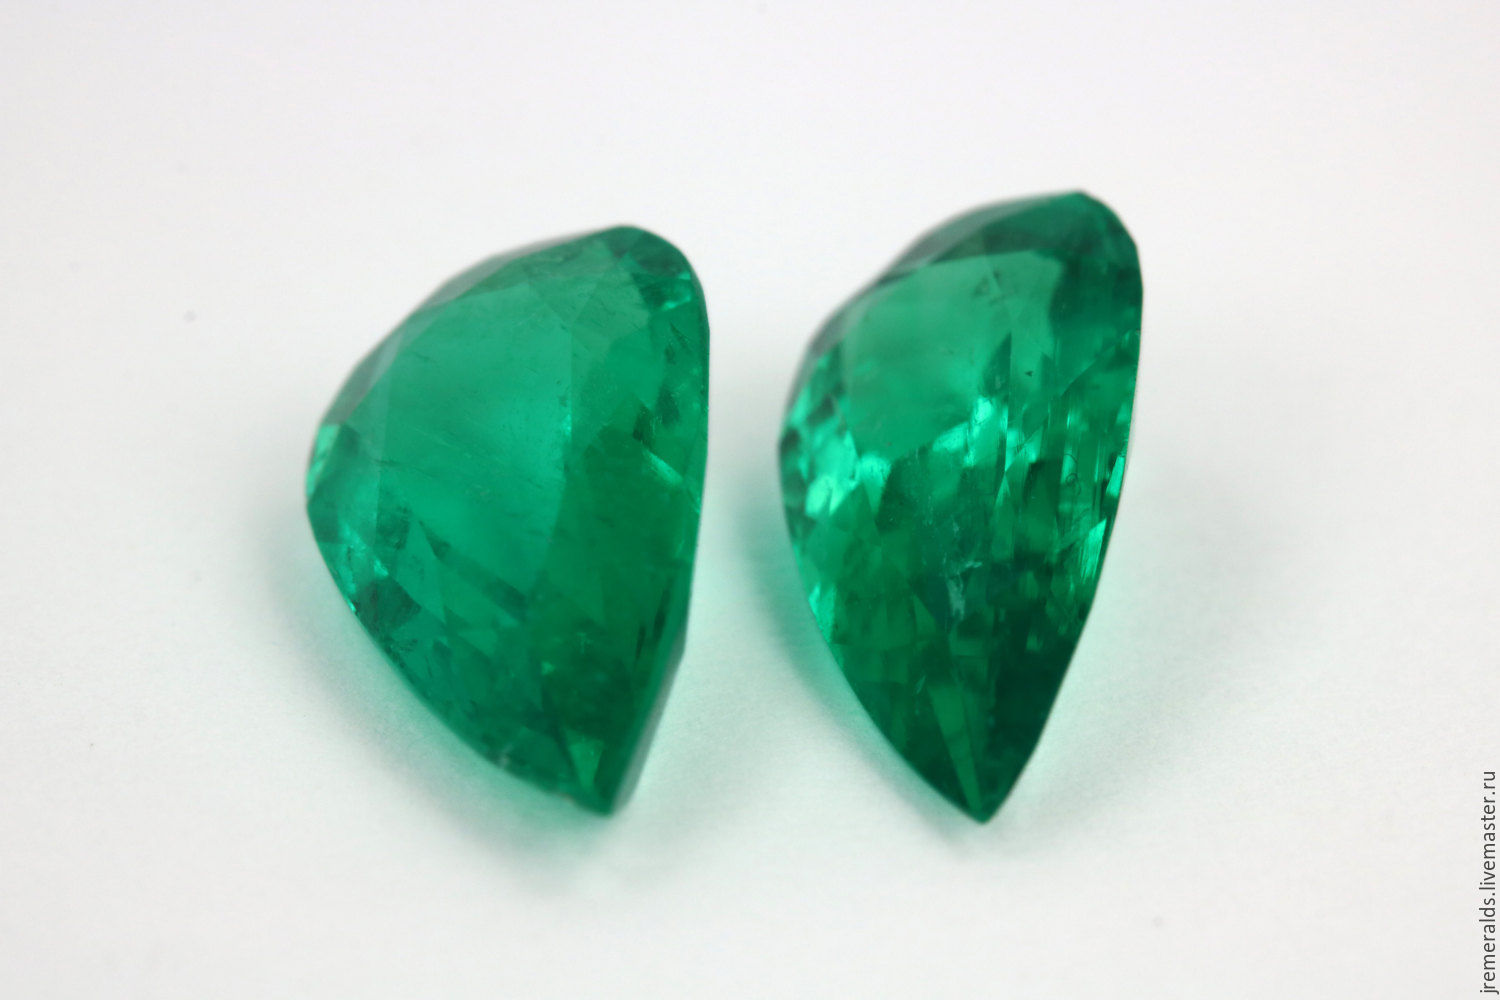 and aaa emeralds emerald desktop shape gemstone loose education grading certification natural pear